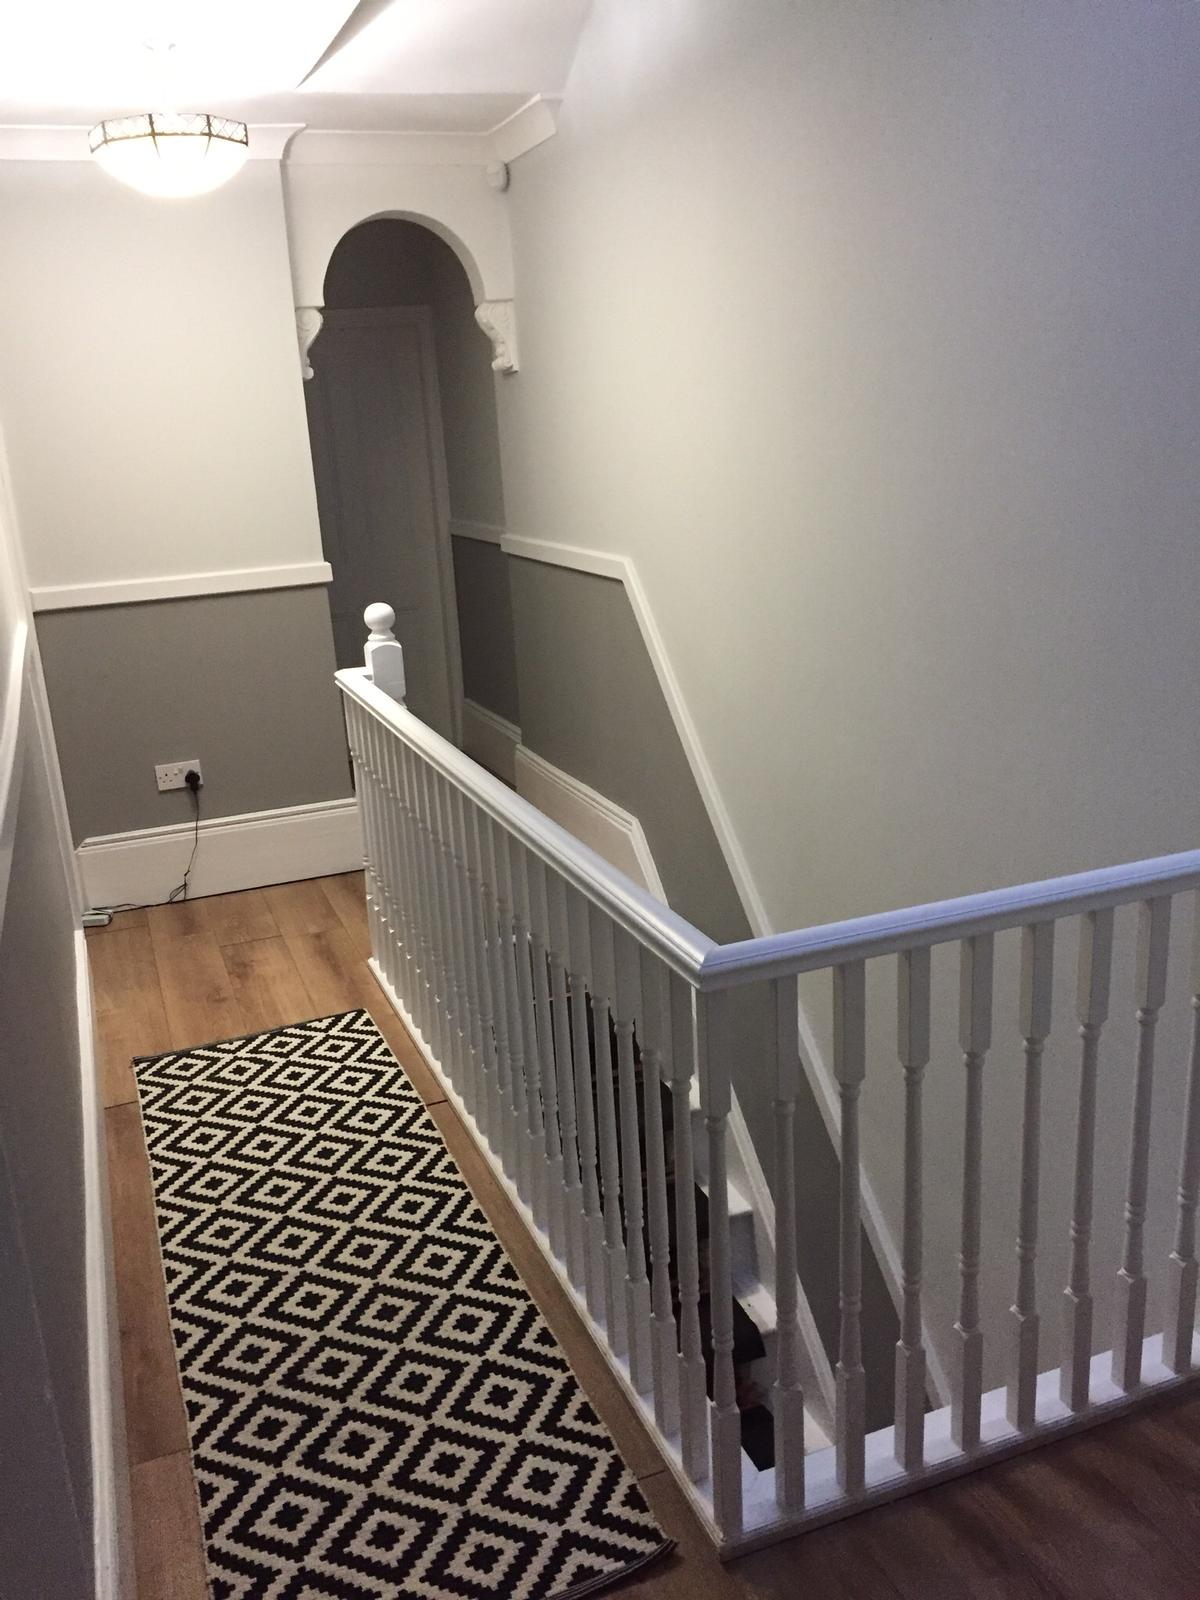 Trustworthy Painter & Decorator based in Leigh – AJH Decor